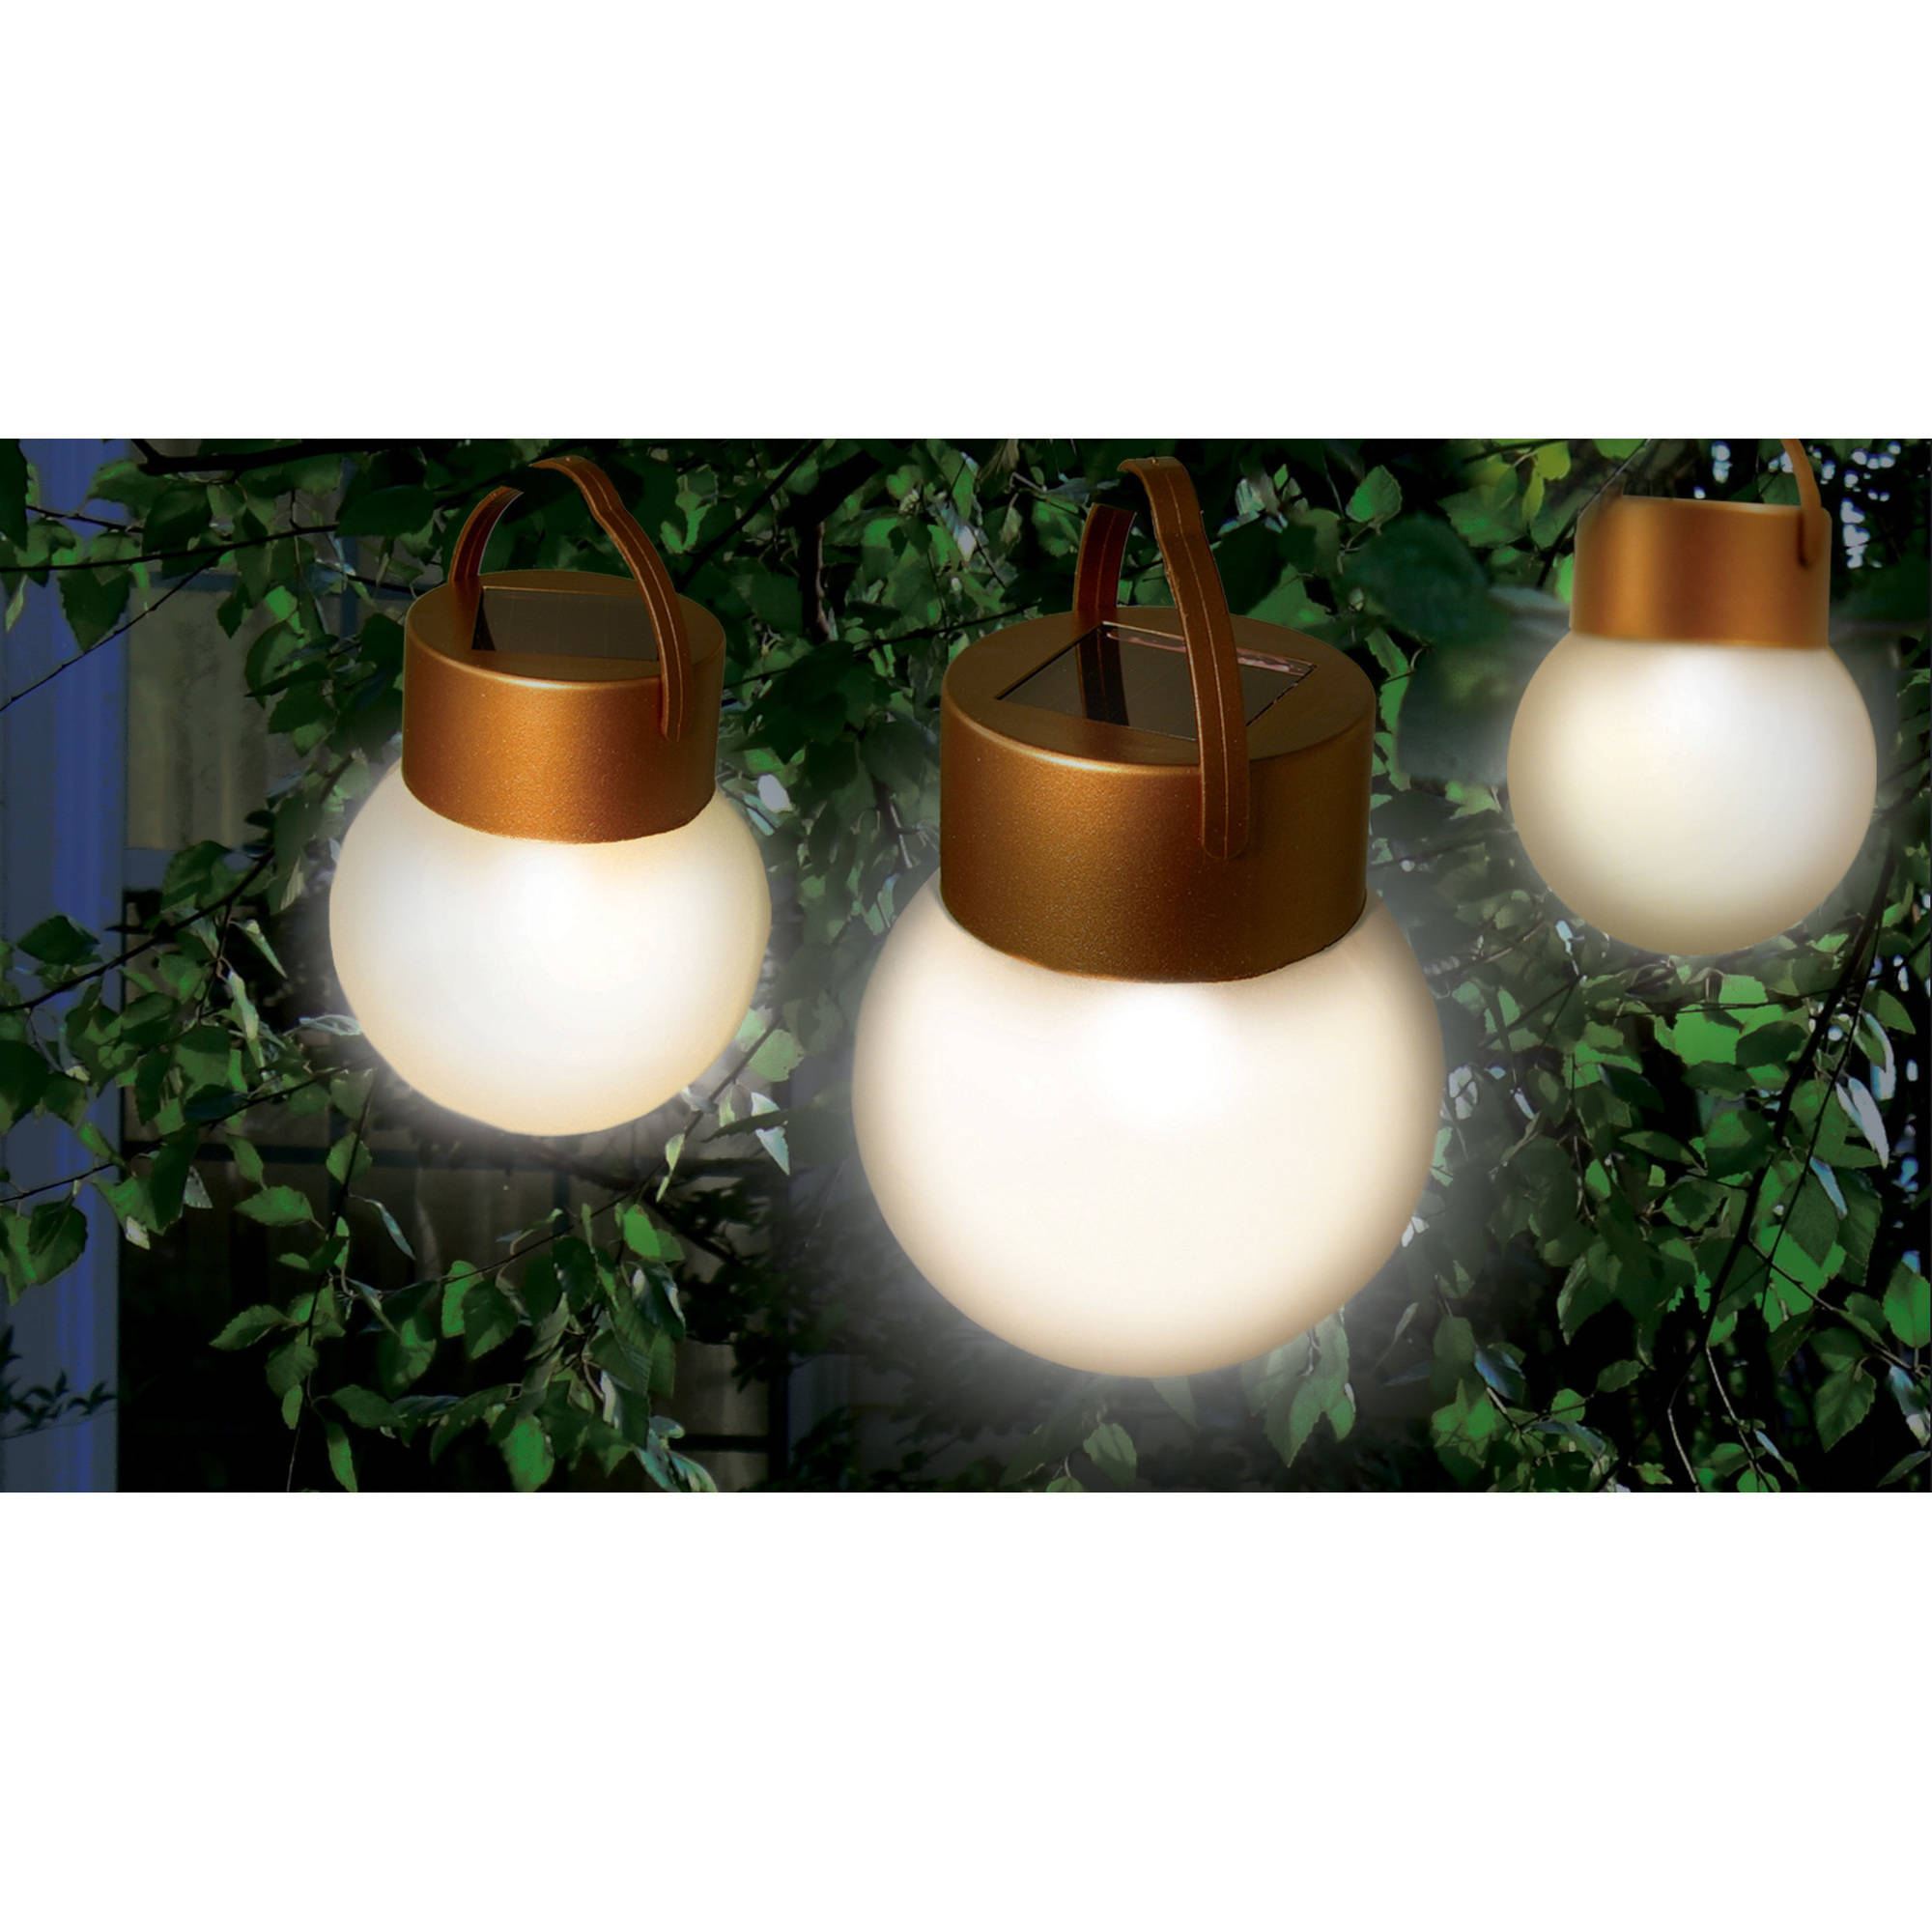 Ideaworks JB6638 Hanging Solar LED Lights, Copper and Frosted by Jobar International